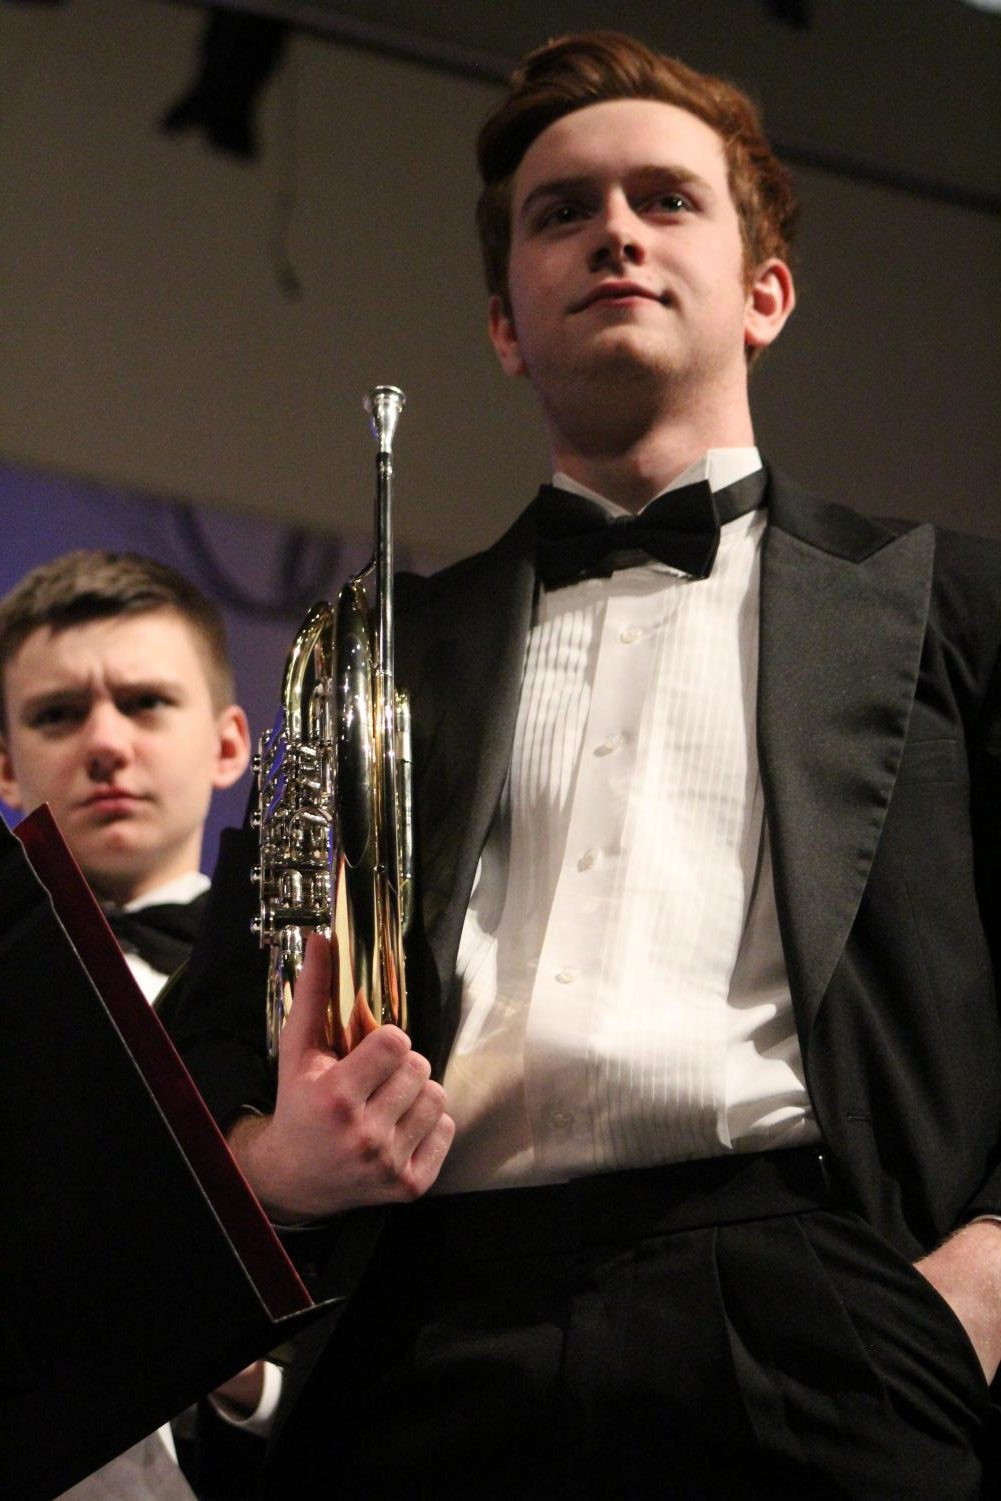 Standing+up+after+his+performance%2C+Leo+Bartin%2C+sophomore%2C+is+applauded+by+the+audience+at+the+band+concert+Feb.+28